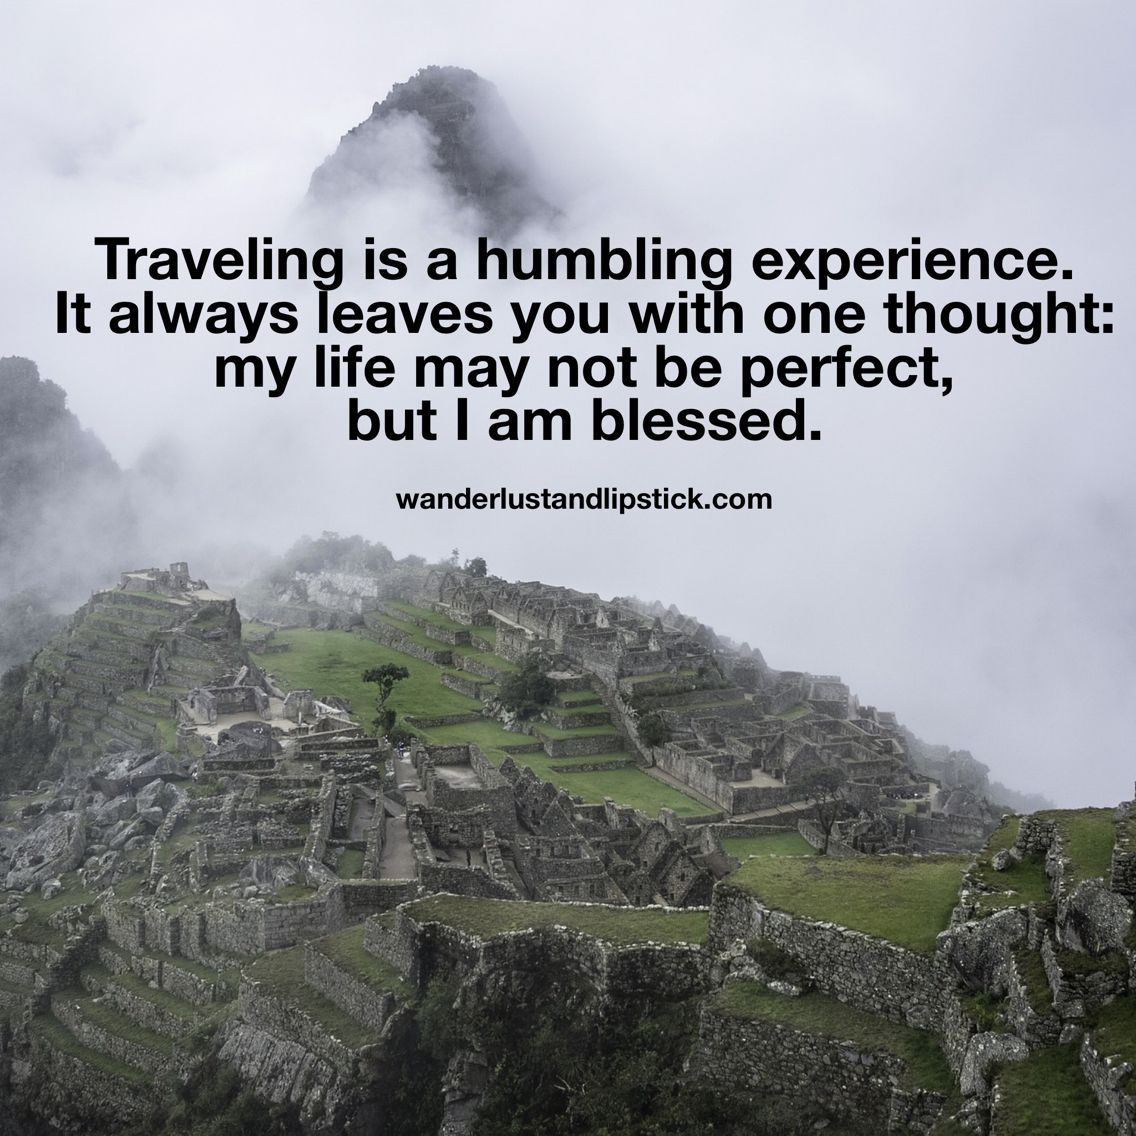 Quotes About Experience And Travel: Traveling Is A Humbling Experience